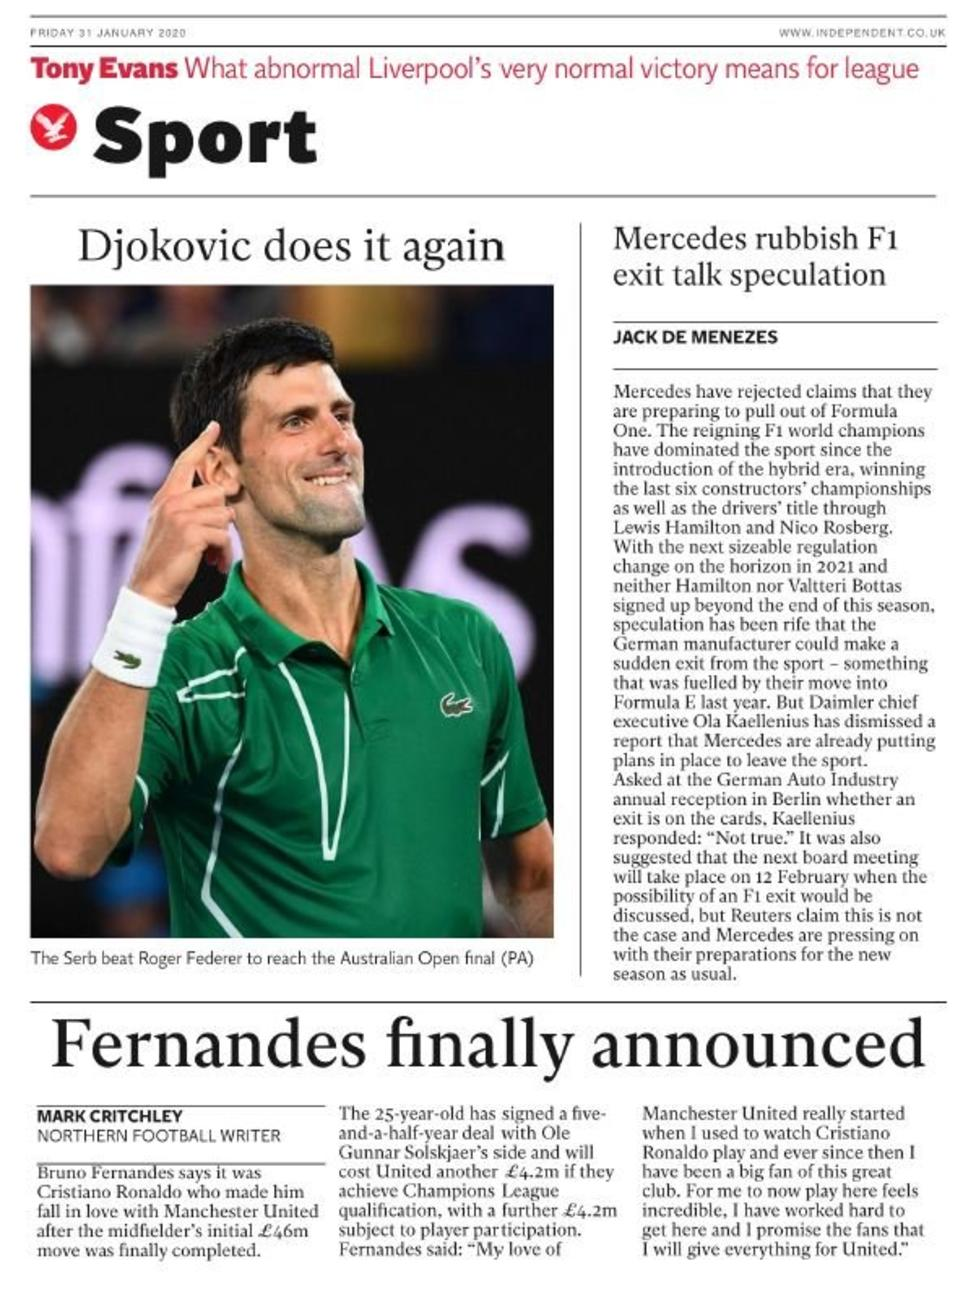 Newspaper Headline: Fernandes Finally Announced